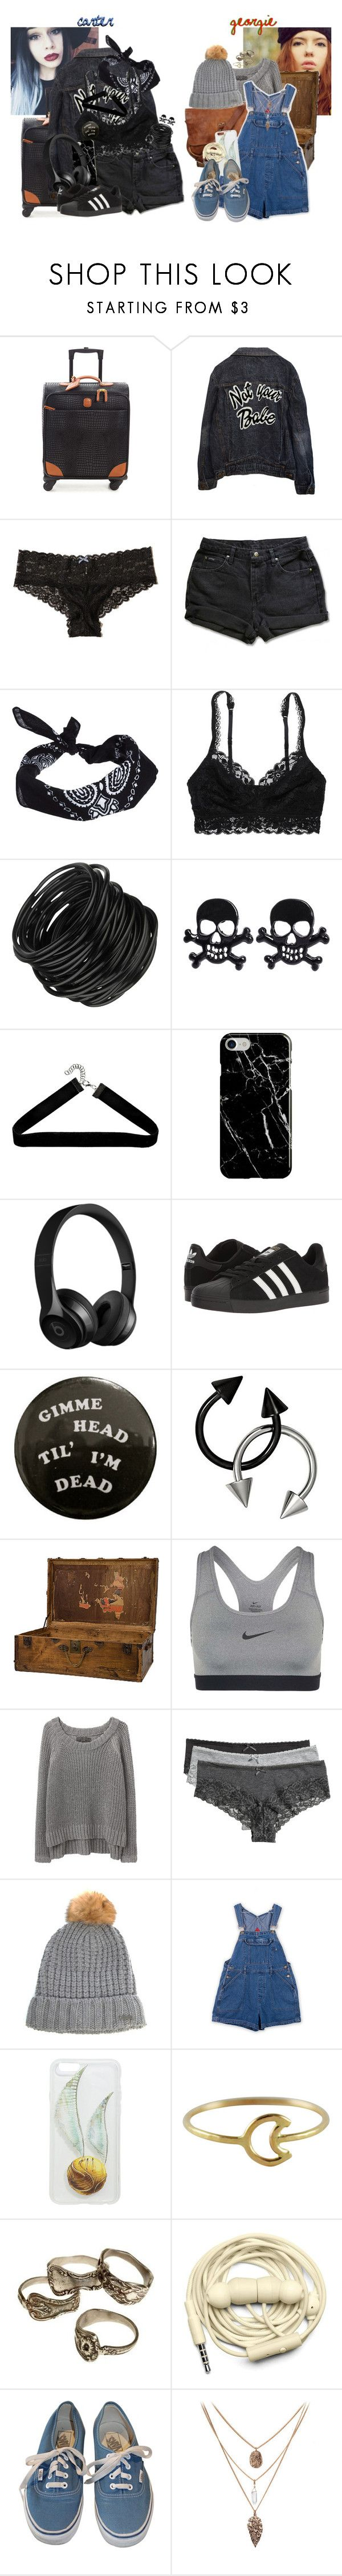 """""""Do I wanna know? If this feeling flows both ways."""" by memories-in-her-eyes ❤ liked on Polyvore featuring Bric's, High Heels Suicide, Hollister Co., ASOS, American Eagle Outfitters, Boohoo, Recover, adidas, Jayson Home and rag & bone/JEAN"""